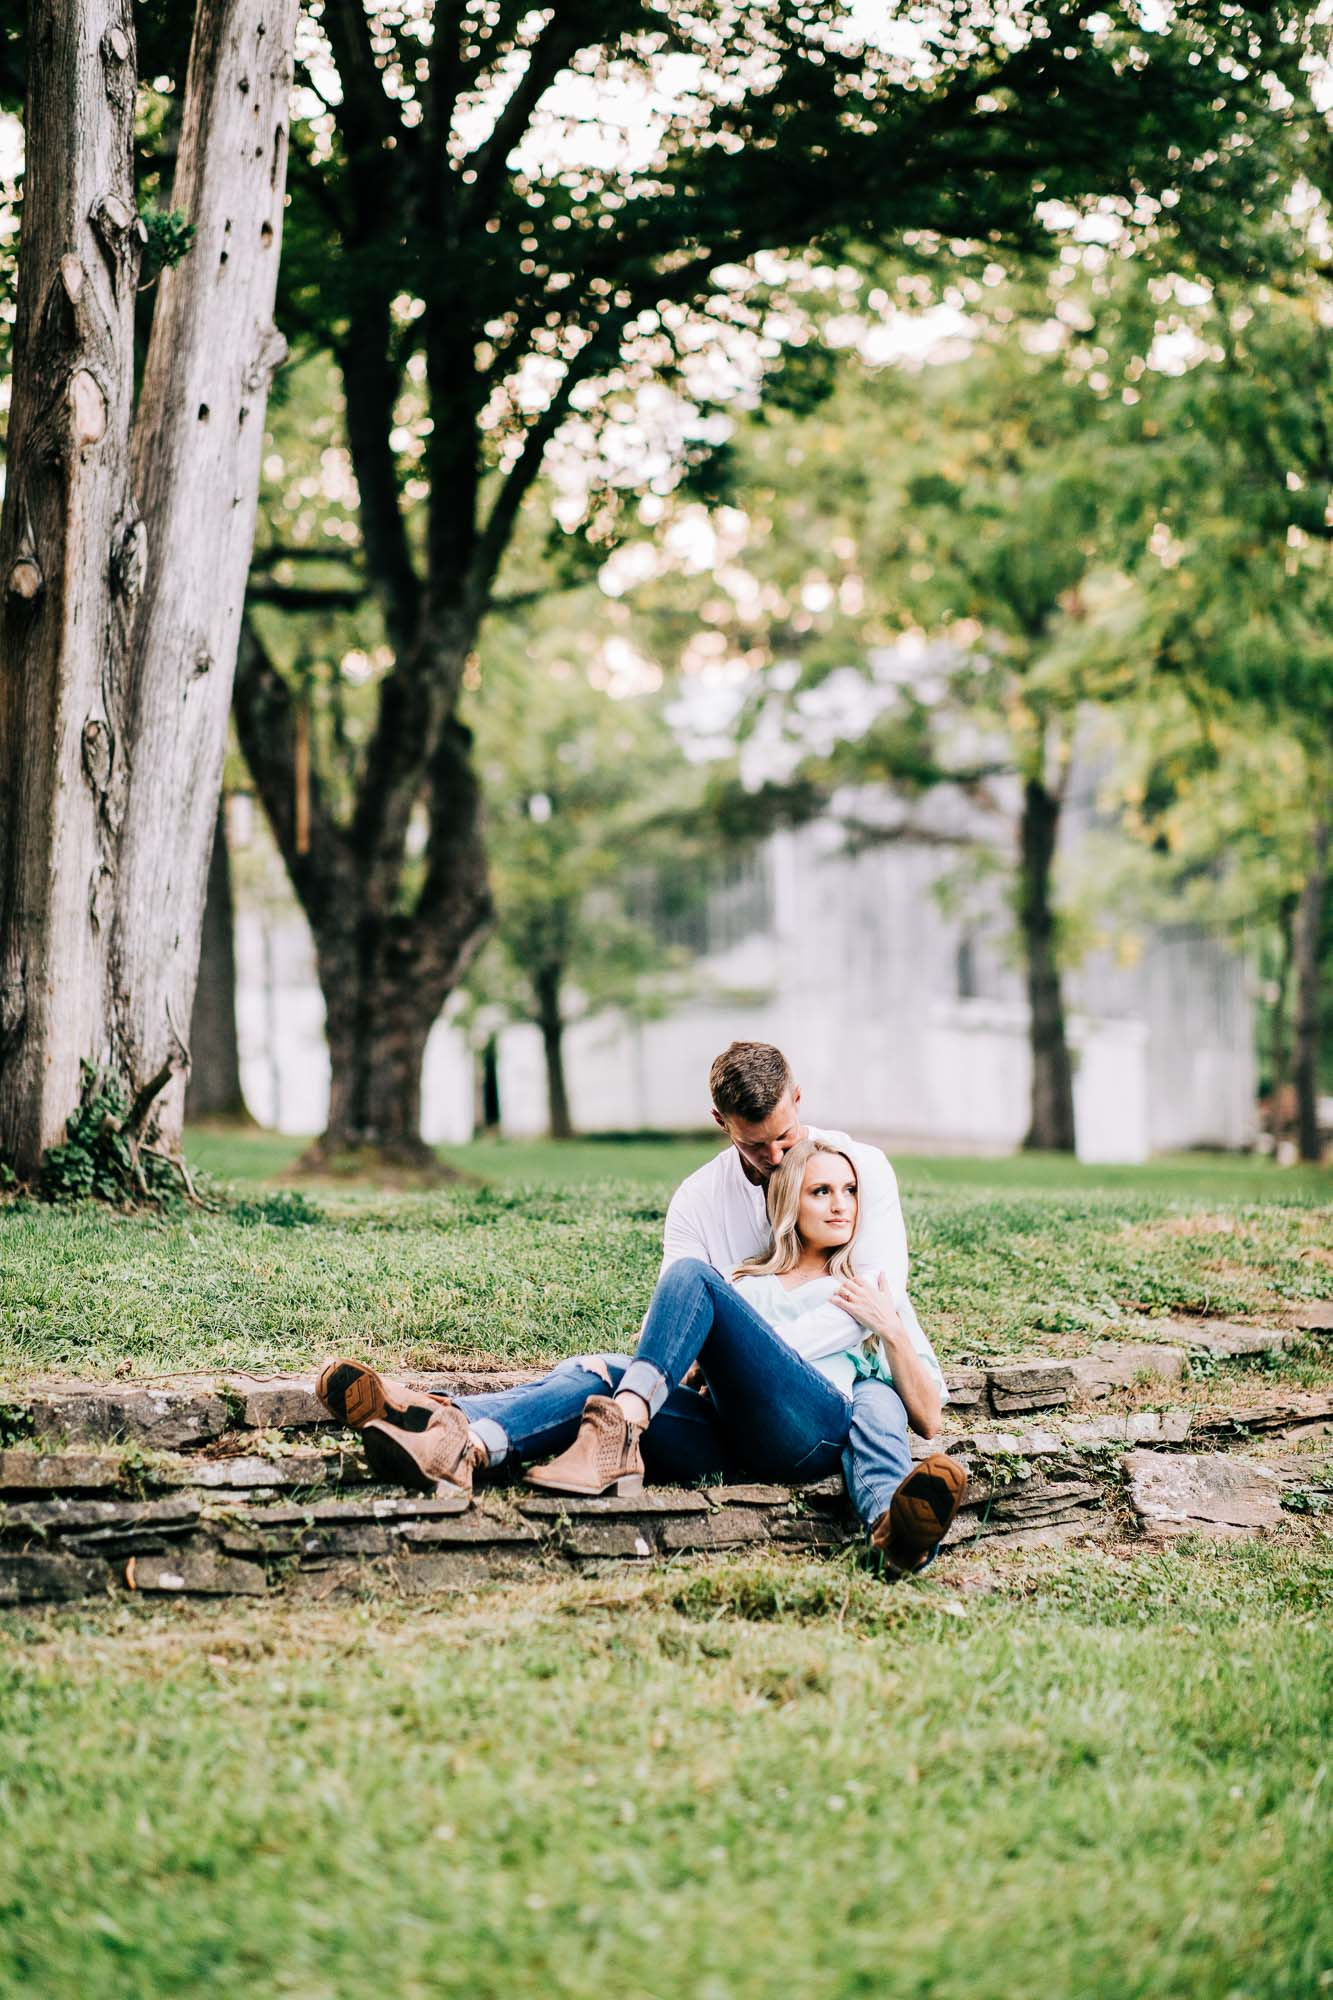 Sweet-valley-engagement-session-8832.jpg